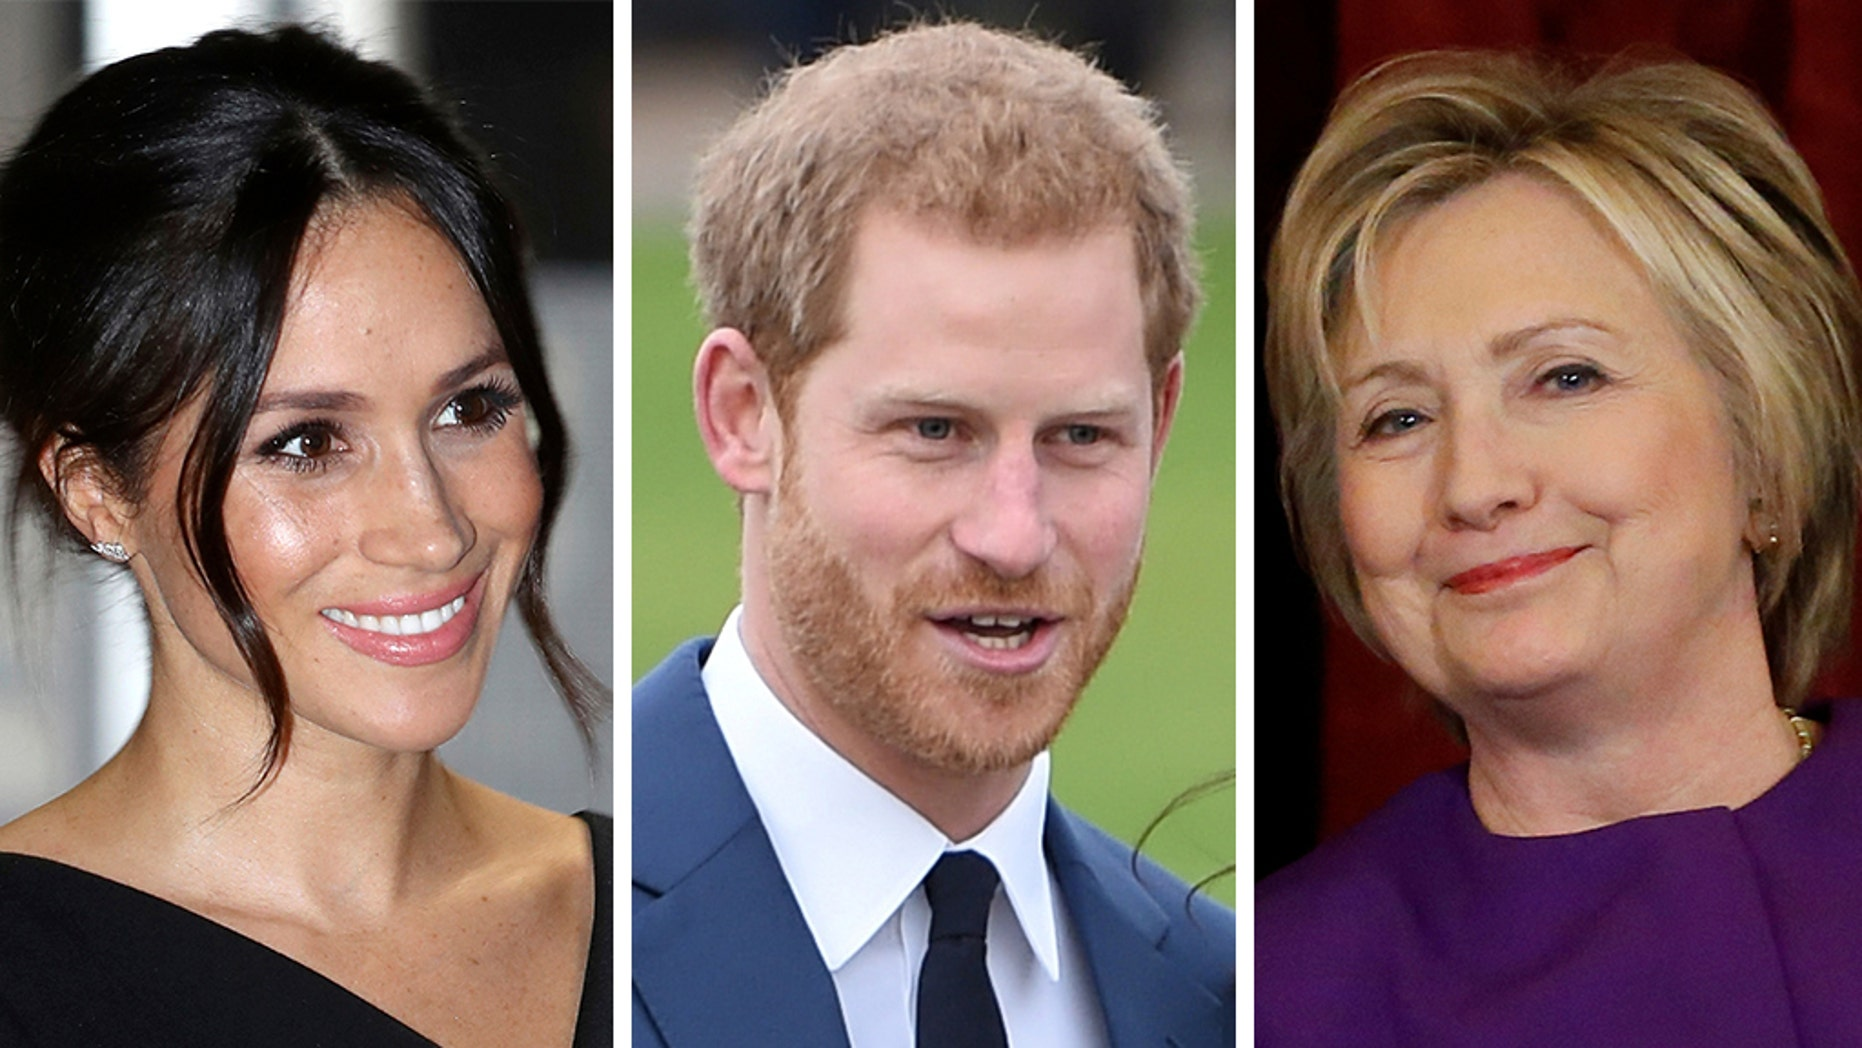 Prince William and Prince Harry Are Going to Split Their Royal Household